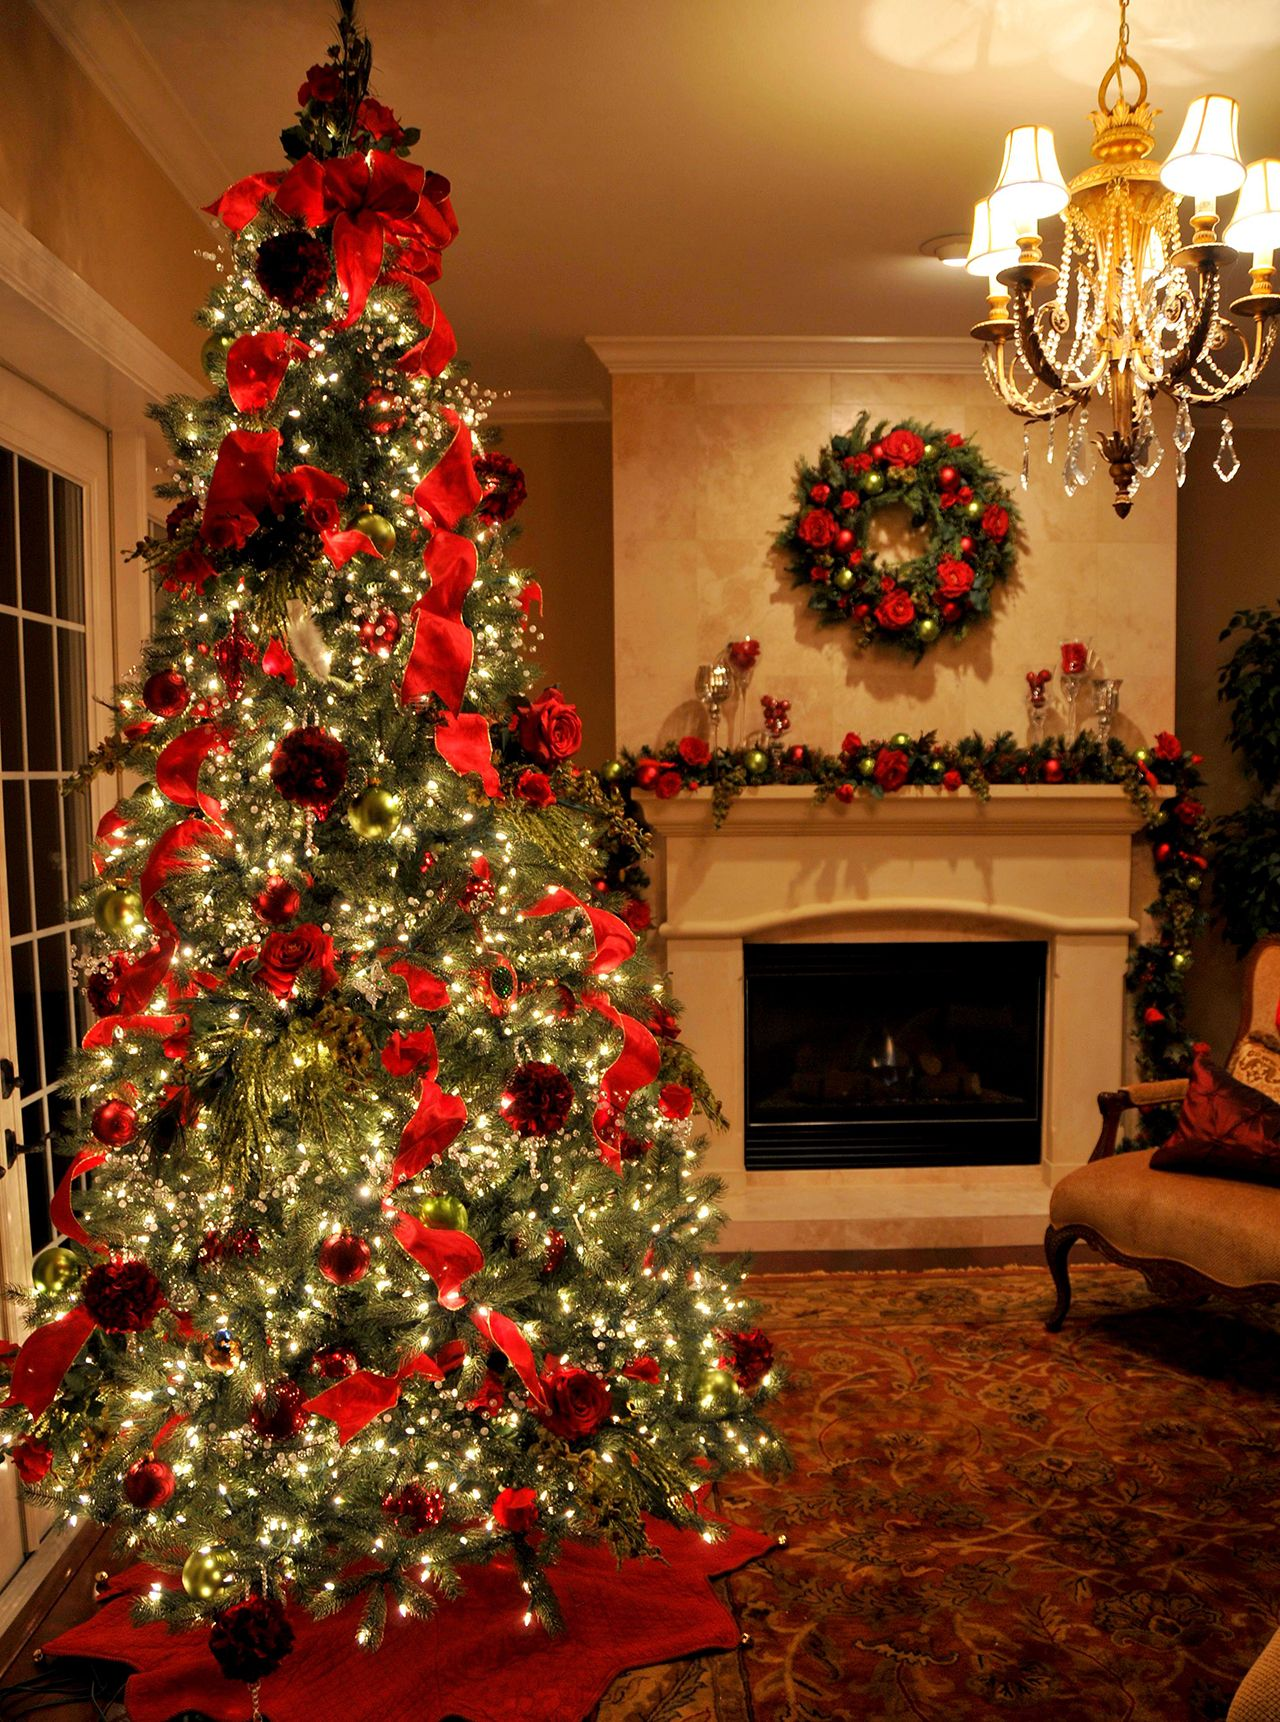 50 Of the Most Inspiring Christmas Tree Designs